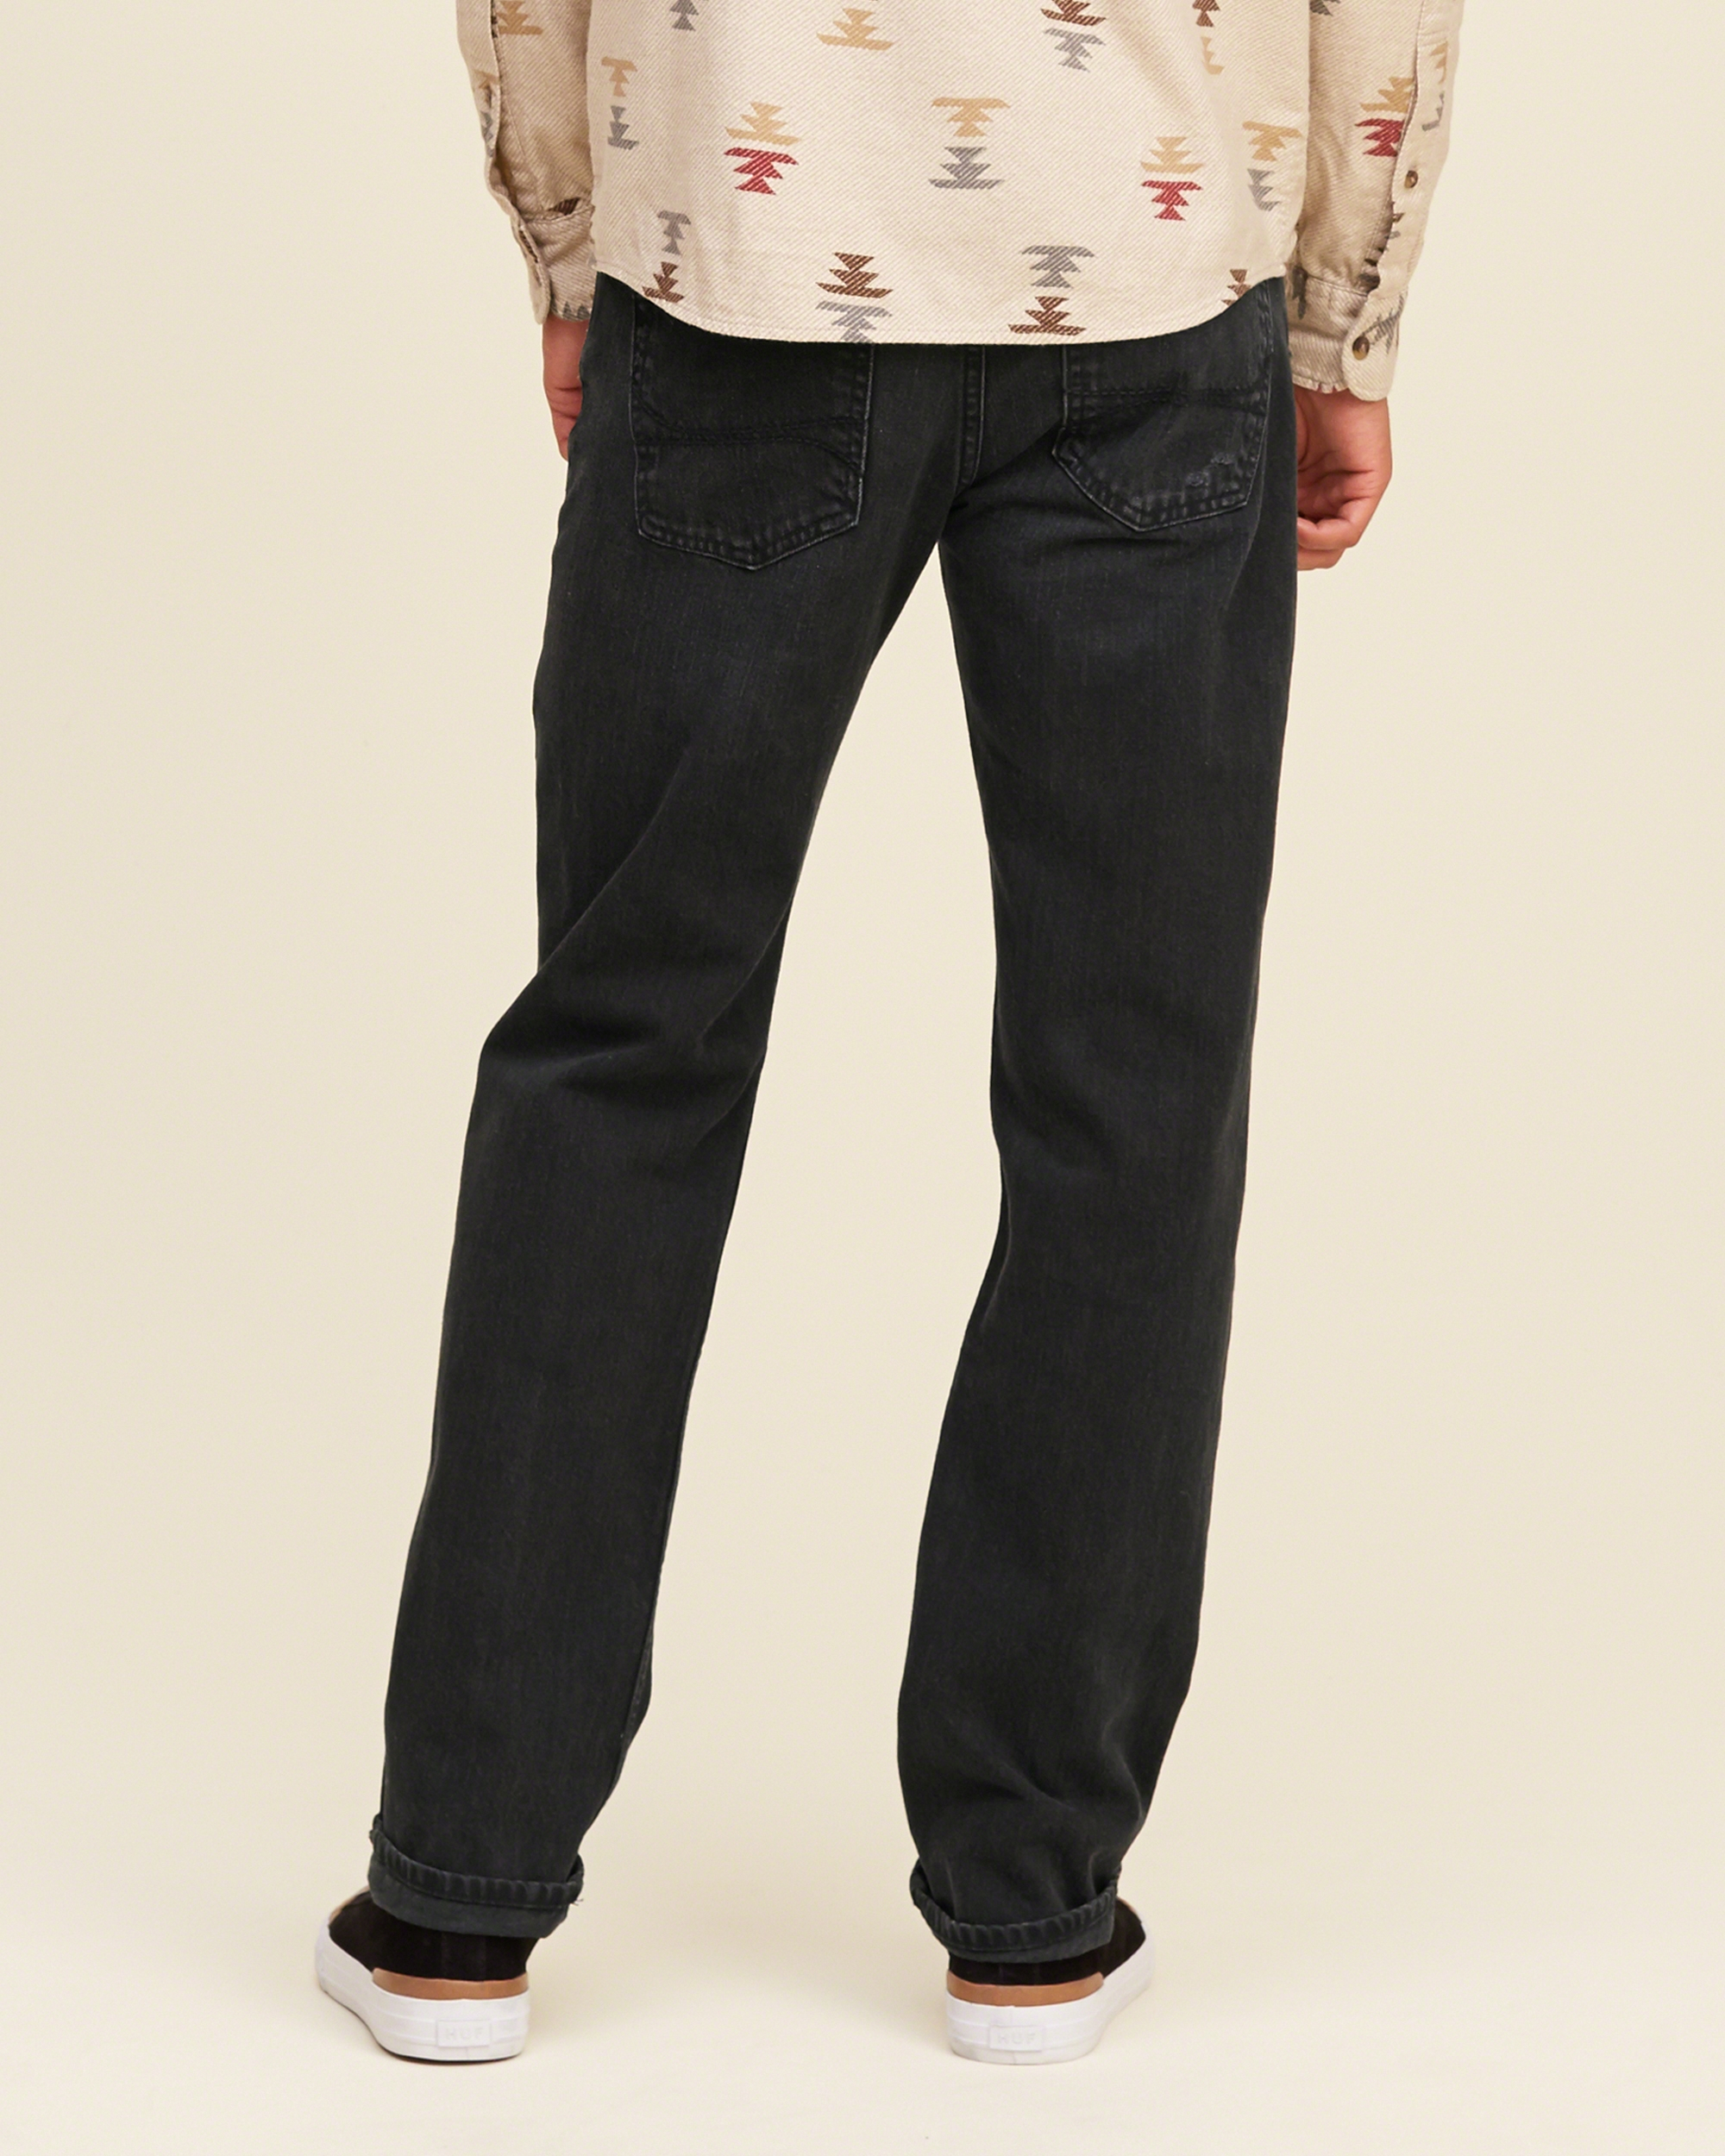 hollister dark jeans for men - photo #16